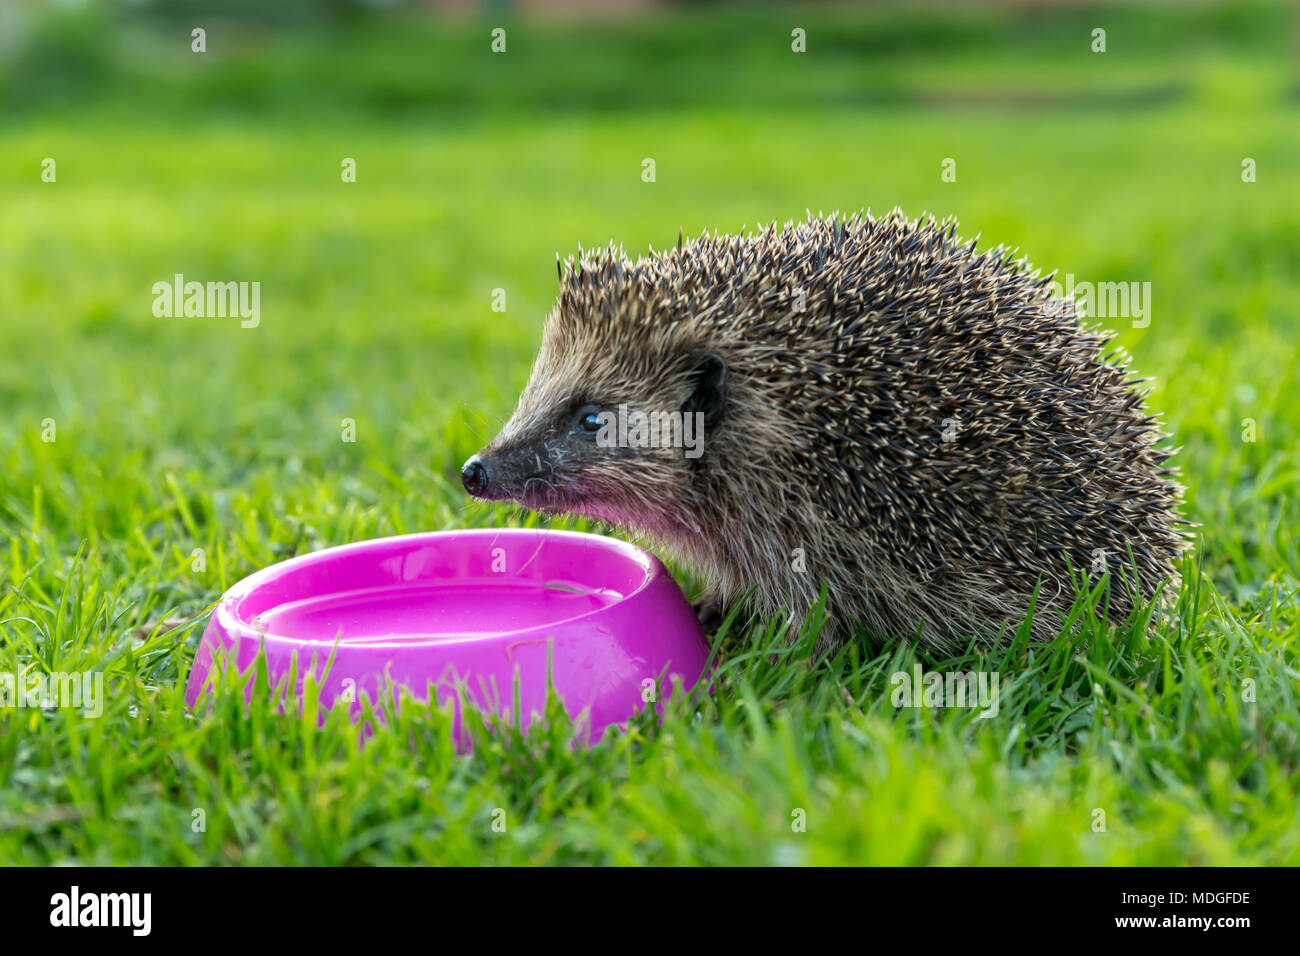 Hedgehog, wild, native European hedgehog drinking water from a pink bowl on green grass.  Horizontal, landscape - Stock Image